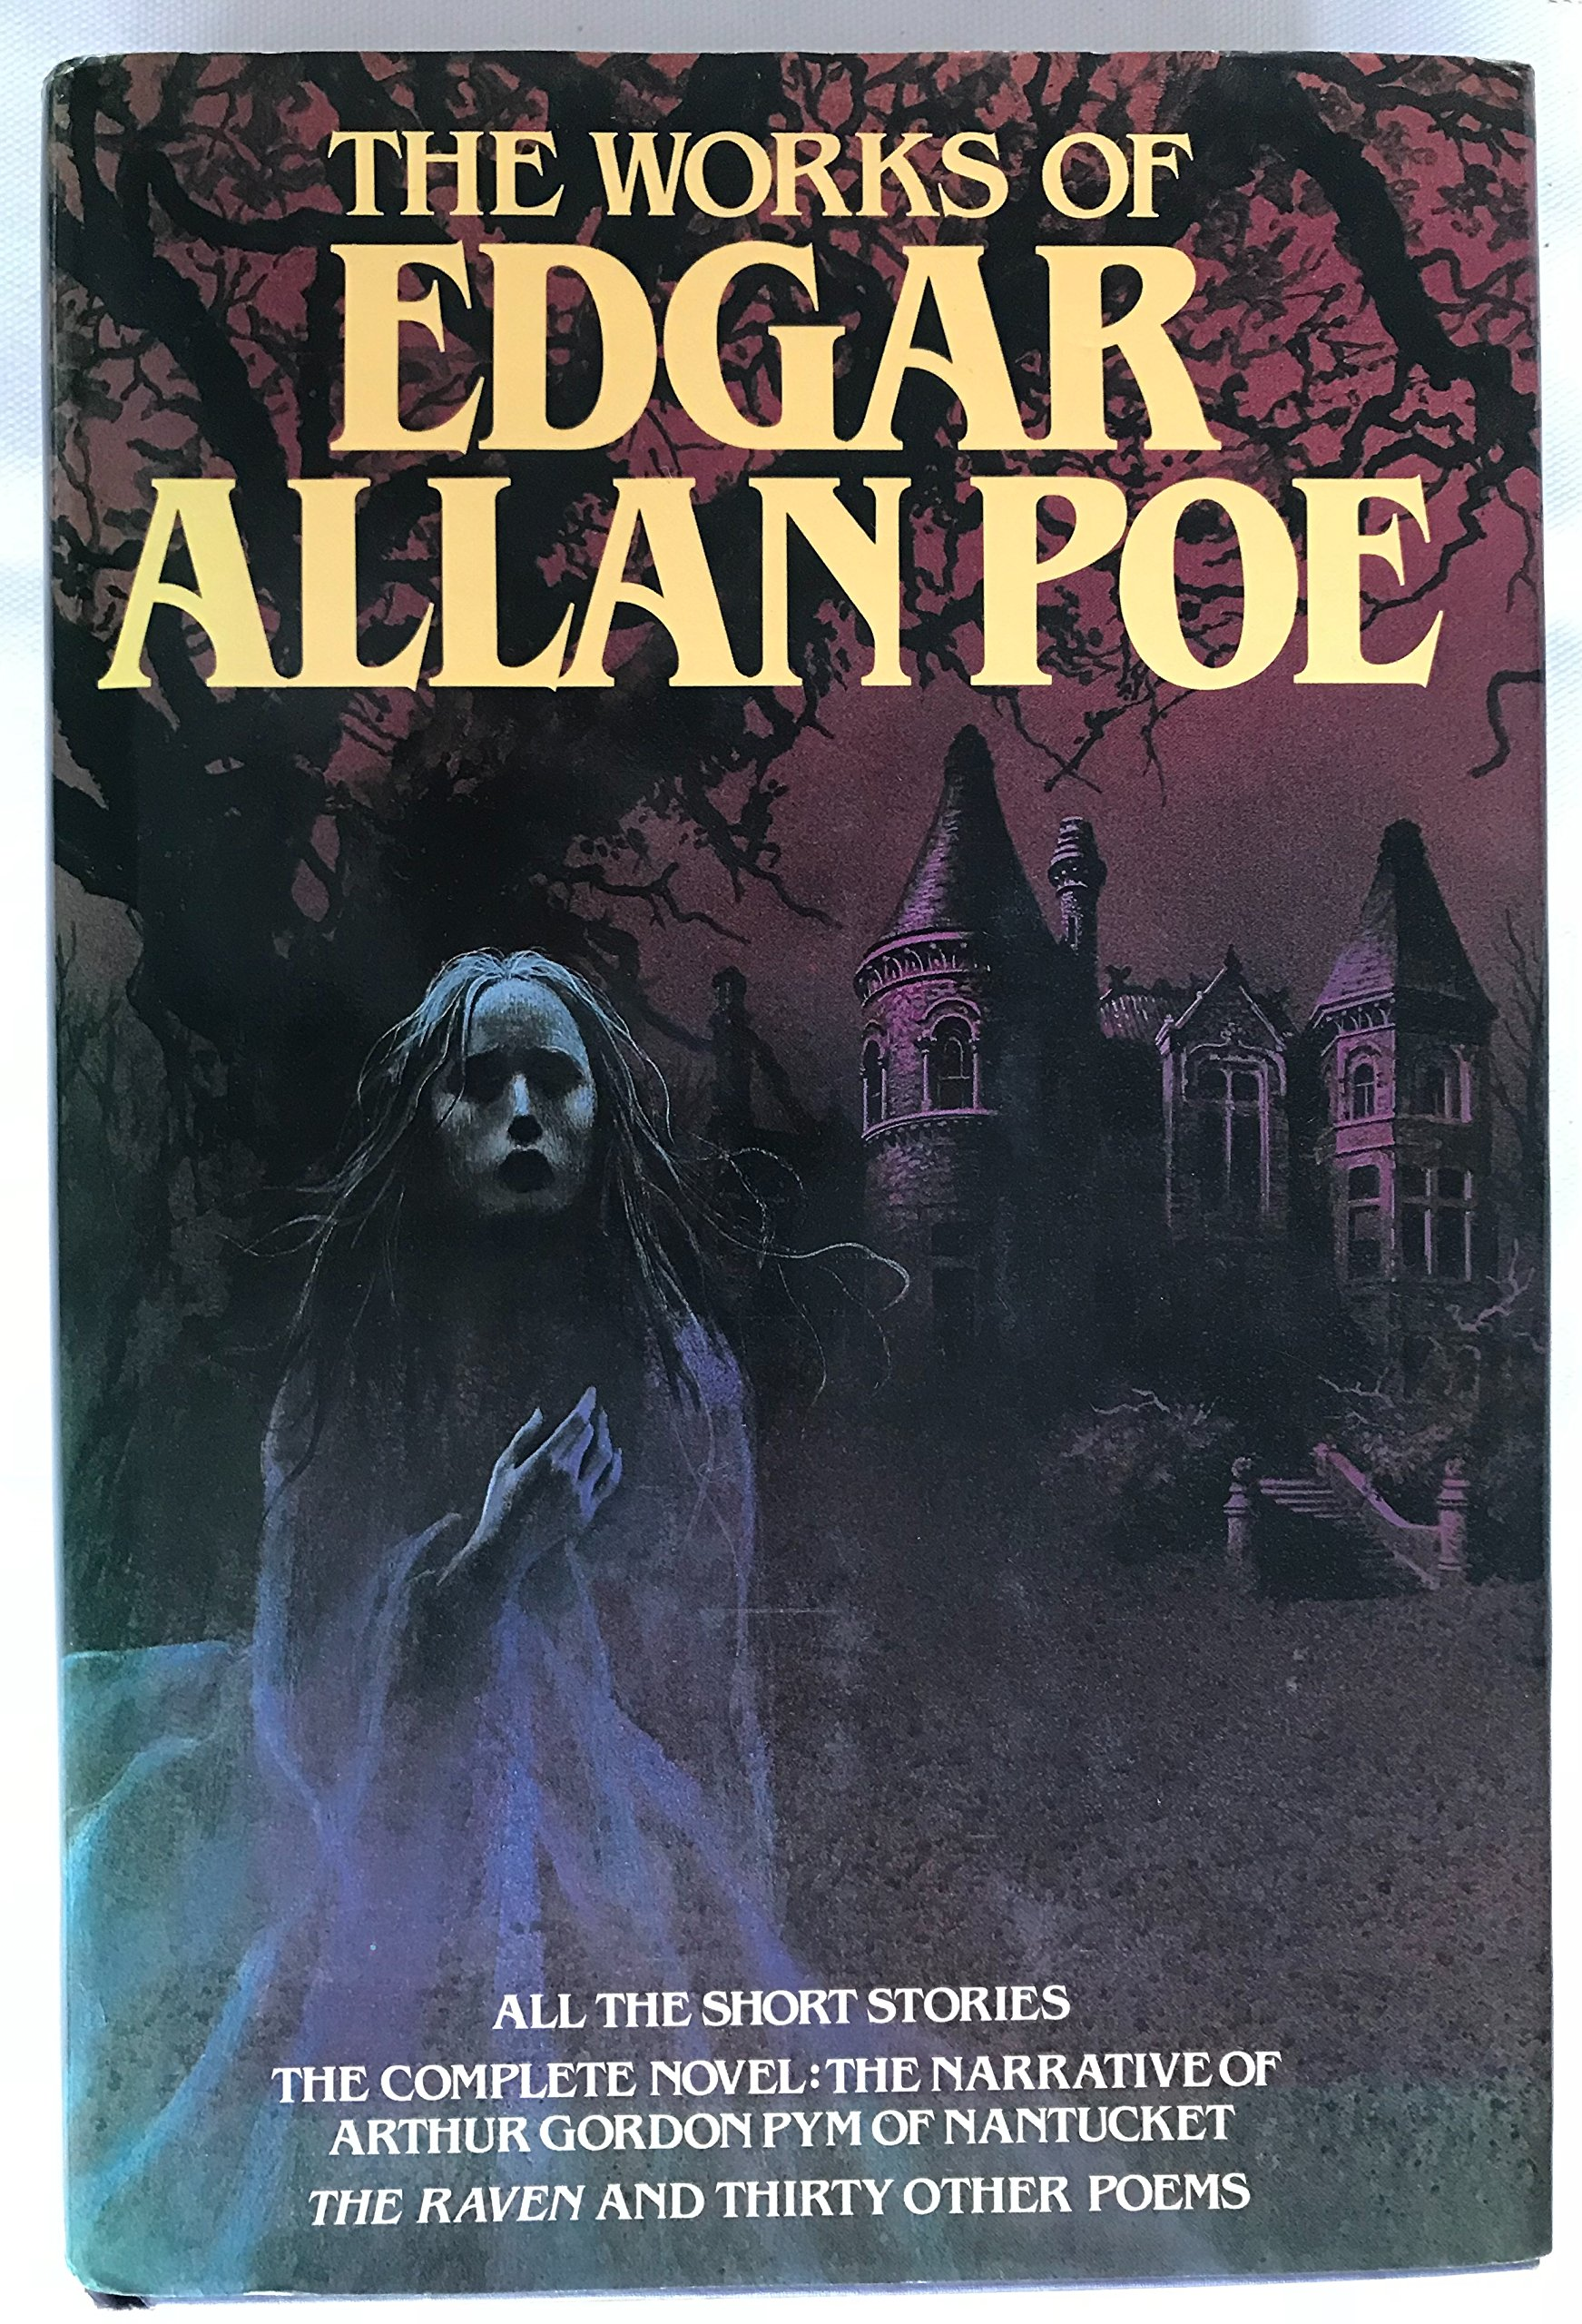 The Works of Edgar Allan Poe: Sixty-seven Tales, One Complete Novel and Thirty-one Poems: Edgar Allan Poe: 9780517486559: Amazon.com: Books